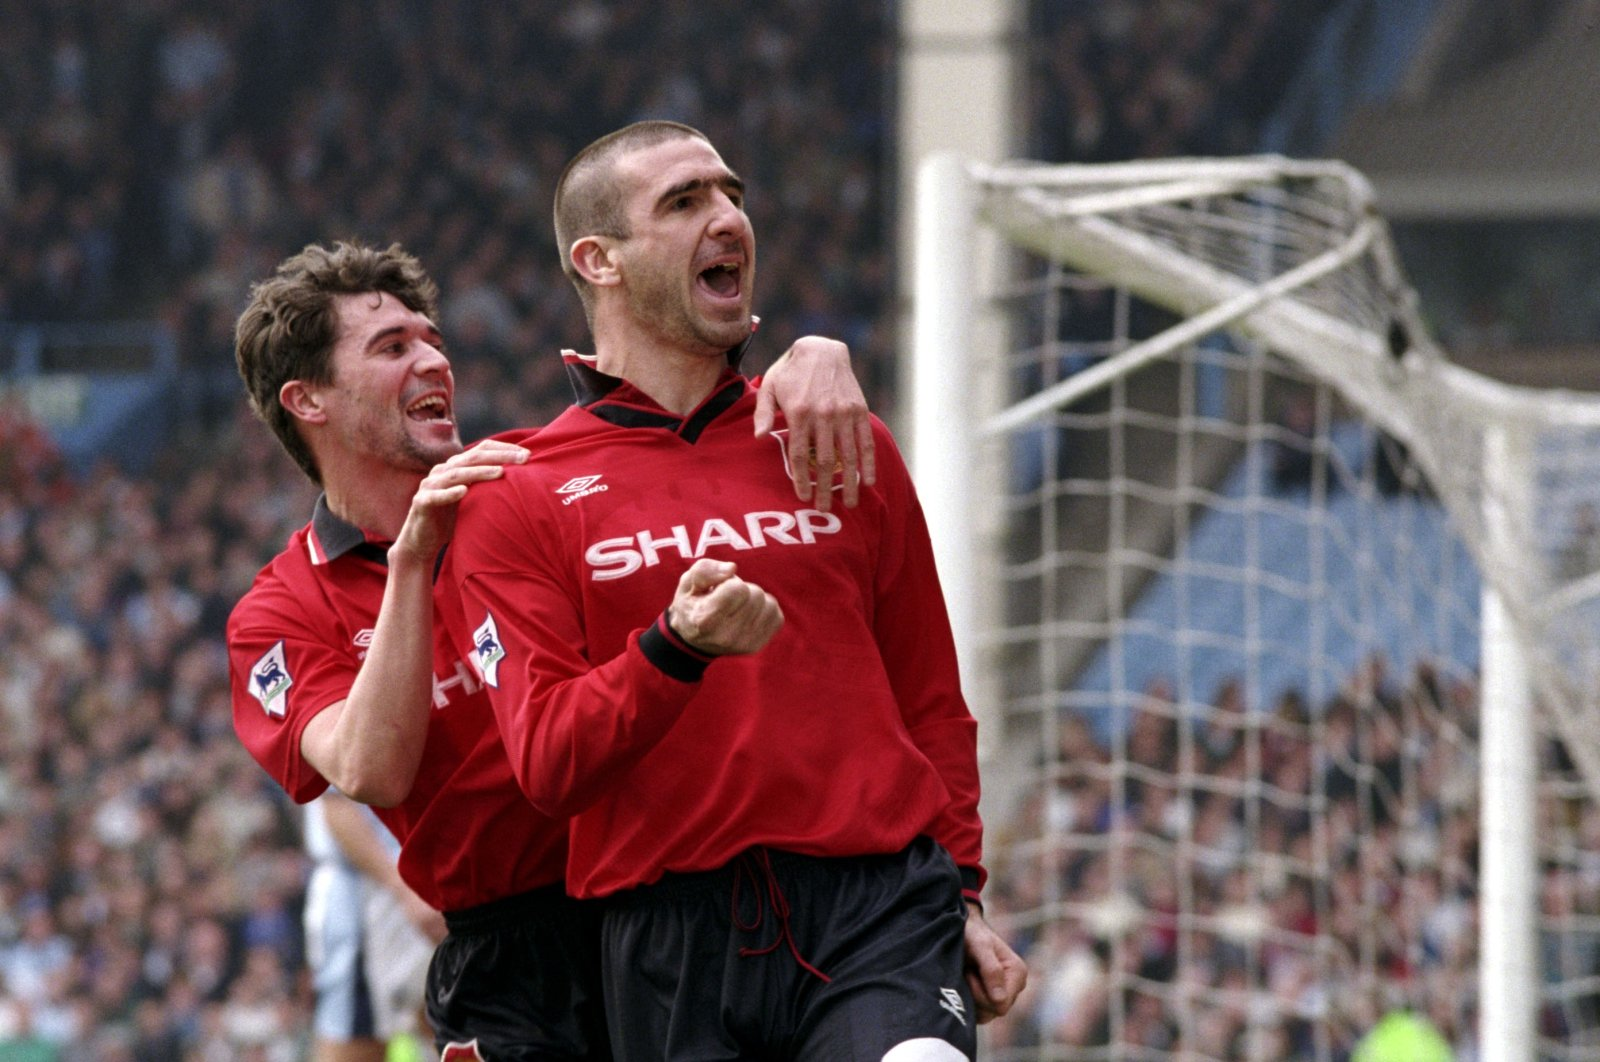 Manchester United's Eric Cantona (R) celebrates his goal with teammate Roy Keane during the Premier League football match between Manchester City and Manchester United at the Maine Road in Manchester, England, April 6, 1996. (Action Images/Darren Walsh via Reuters)